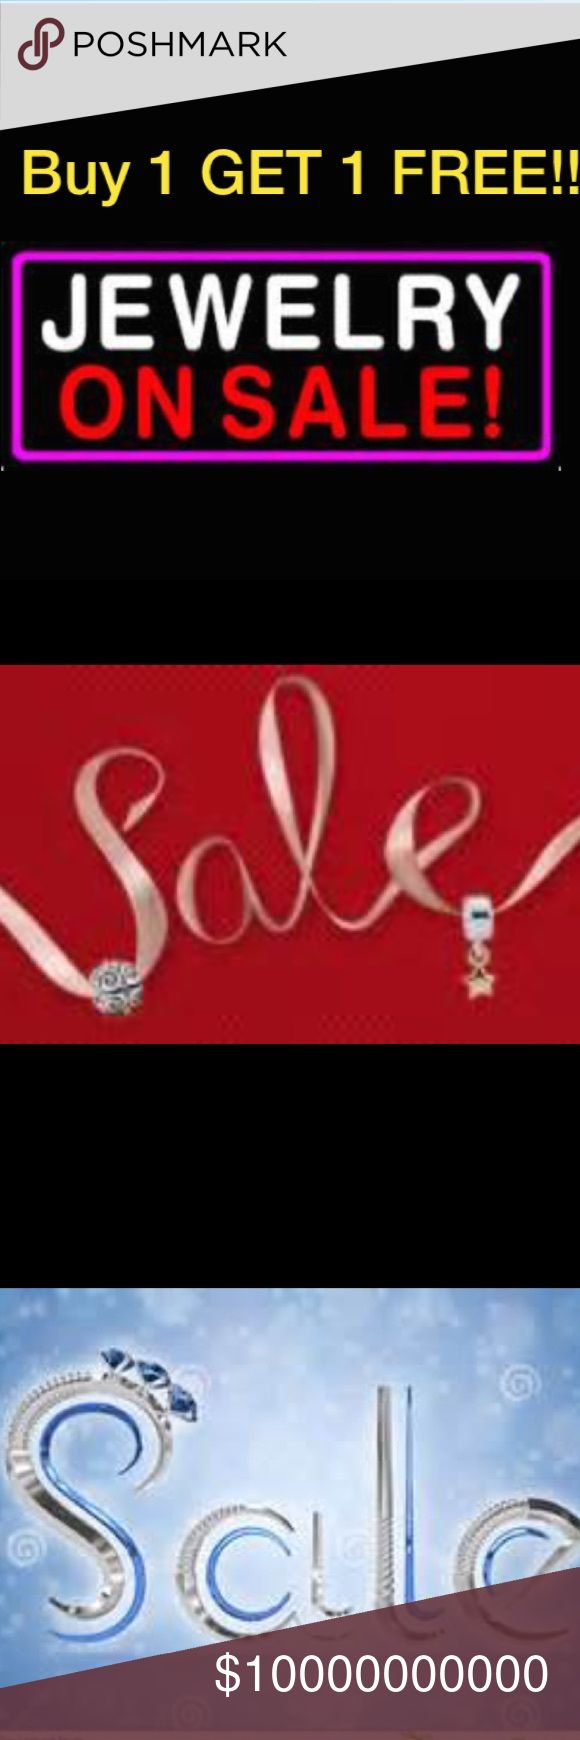 💍💍NEW YEARS JEWELRY SALE BUY 1 GET 1 FREE*💍💍 💍💍NEW YEARS JEWELRY SALE: BUY 1 GET 1 FREE*💍💍For the month of January. All Jewerly are Buy 1 Get 1 FREE* (free item must be of equal to lesser value.) ❌ May not be combined with any other sales.❌ Jewelry